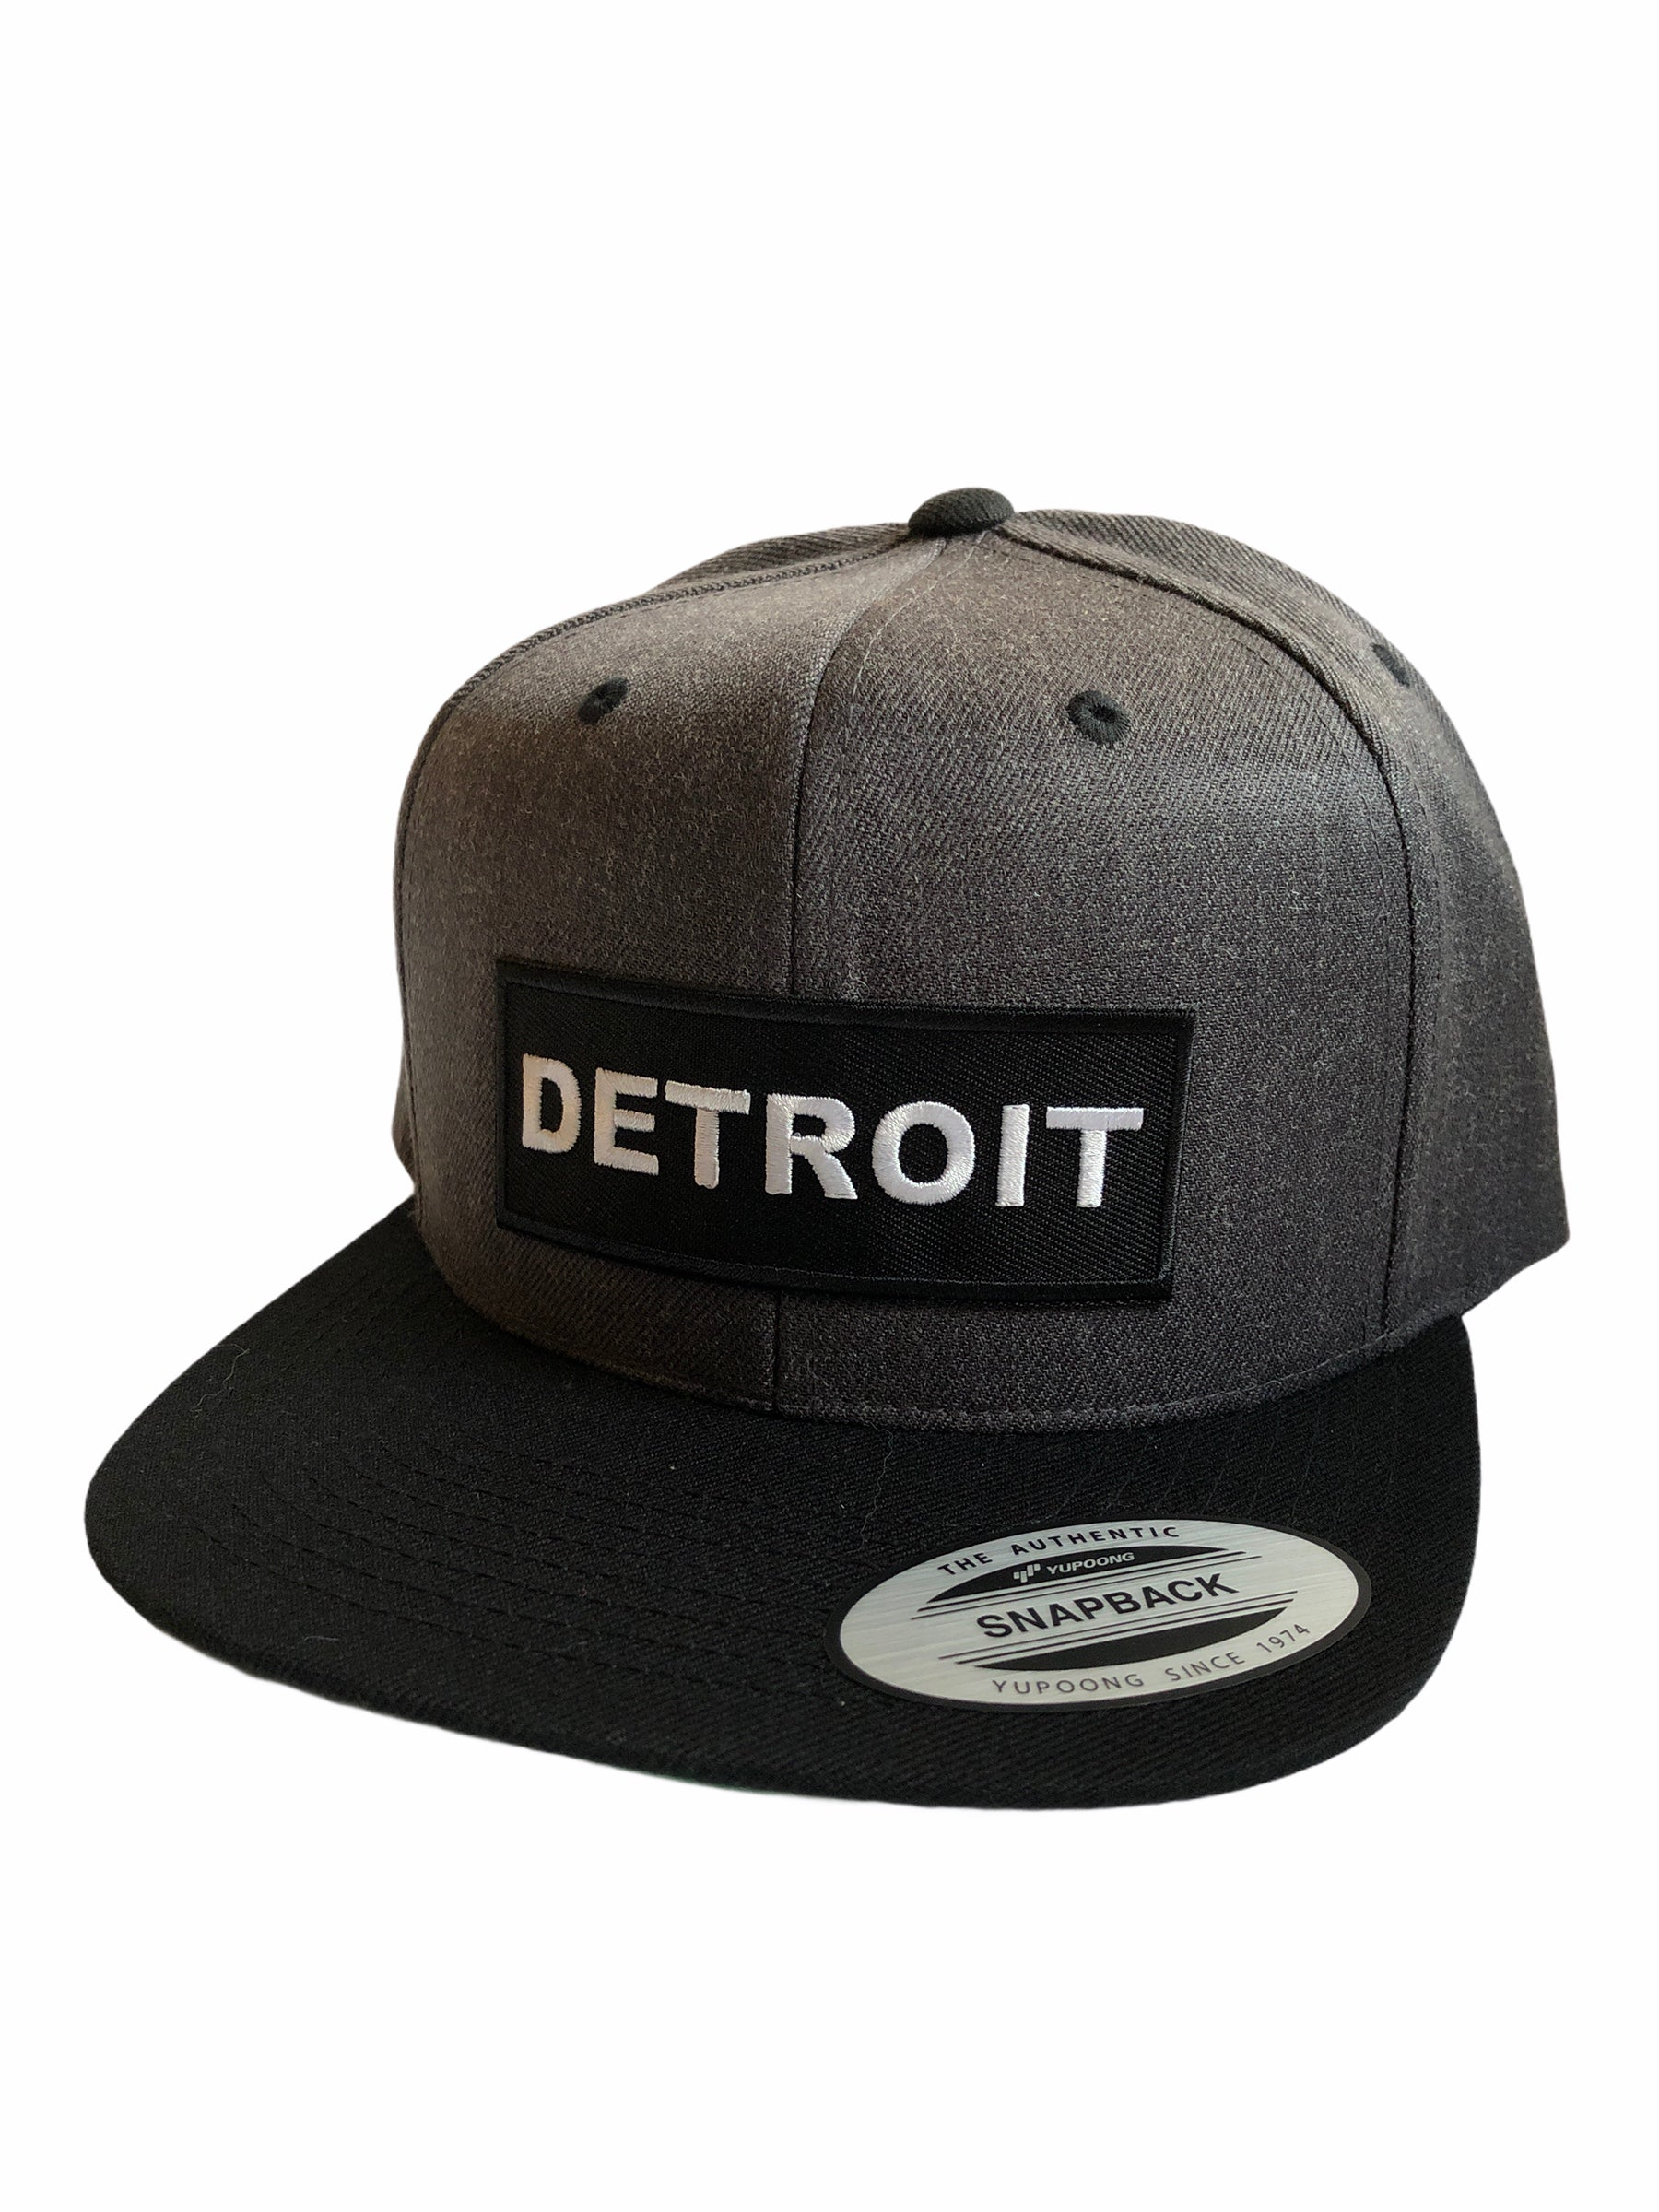 Detroit Premium Snapback Hat / Charcoal + Black - Pure Detroit